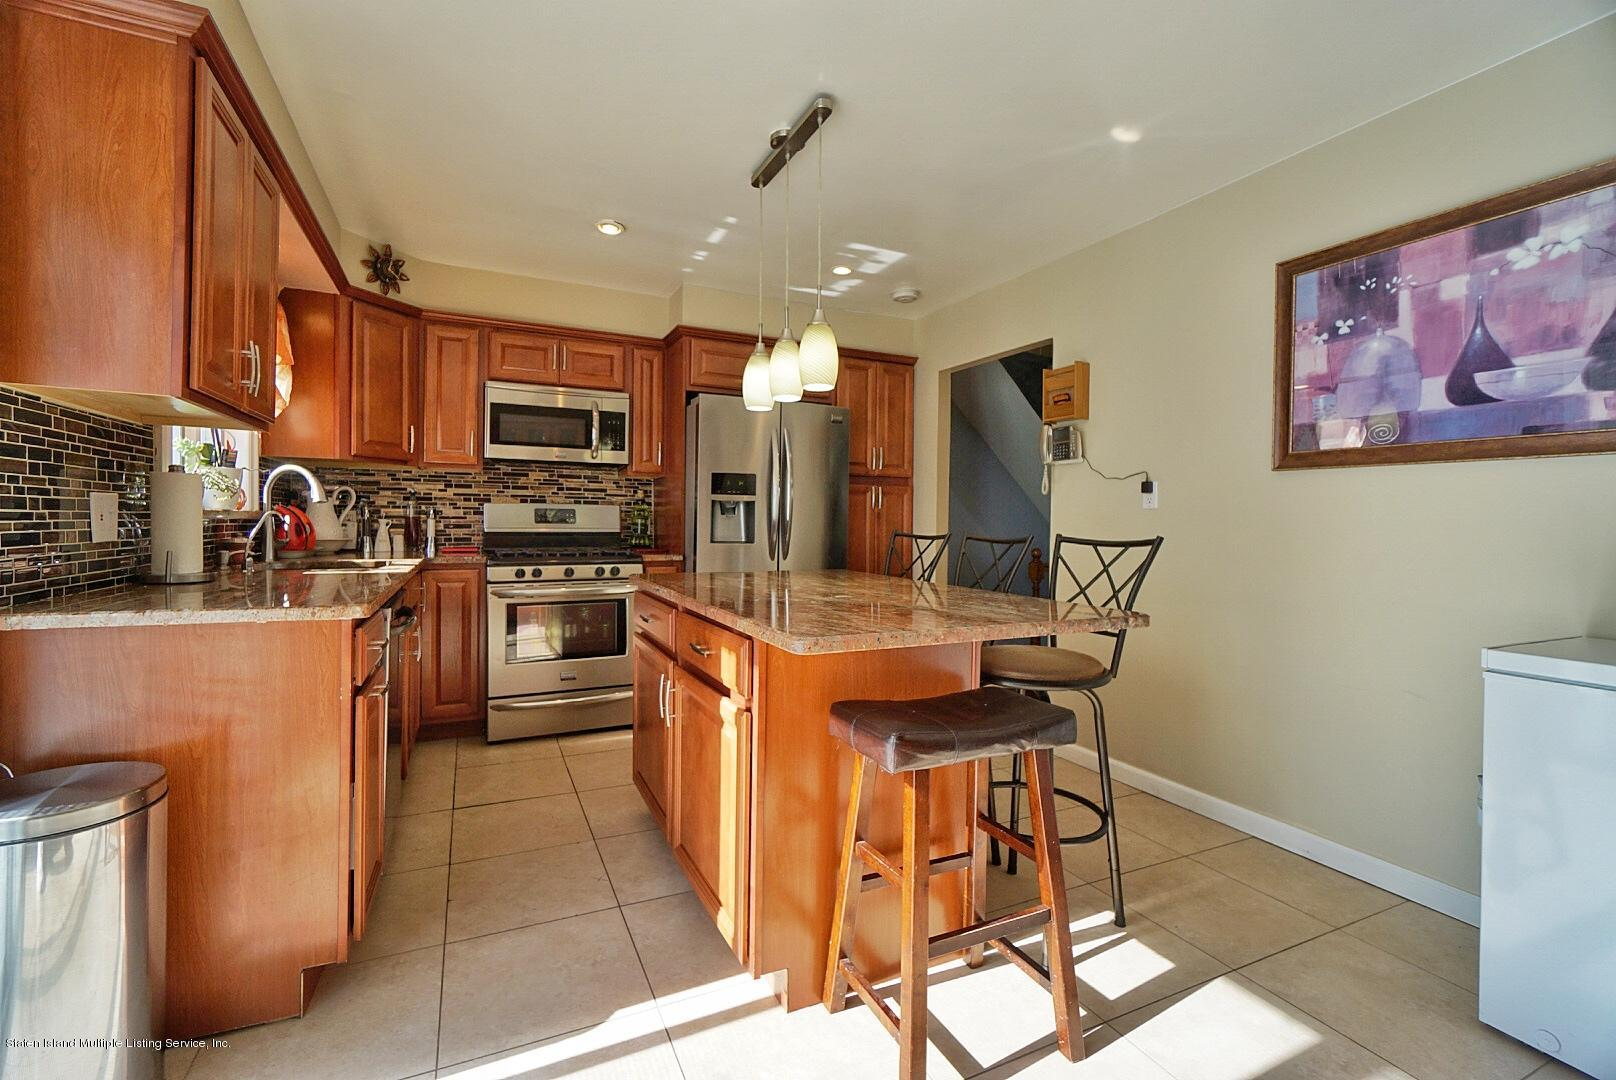 Single Family - Semi-Attached 12 Signs Road  Staten Island, NY 10314, MLS-1123889-7